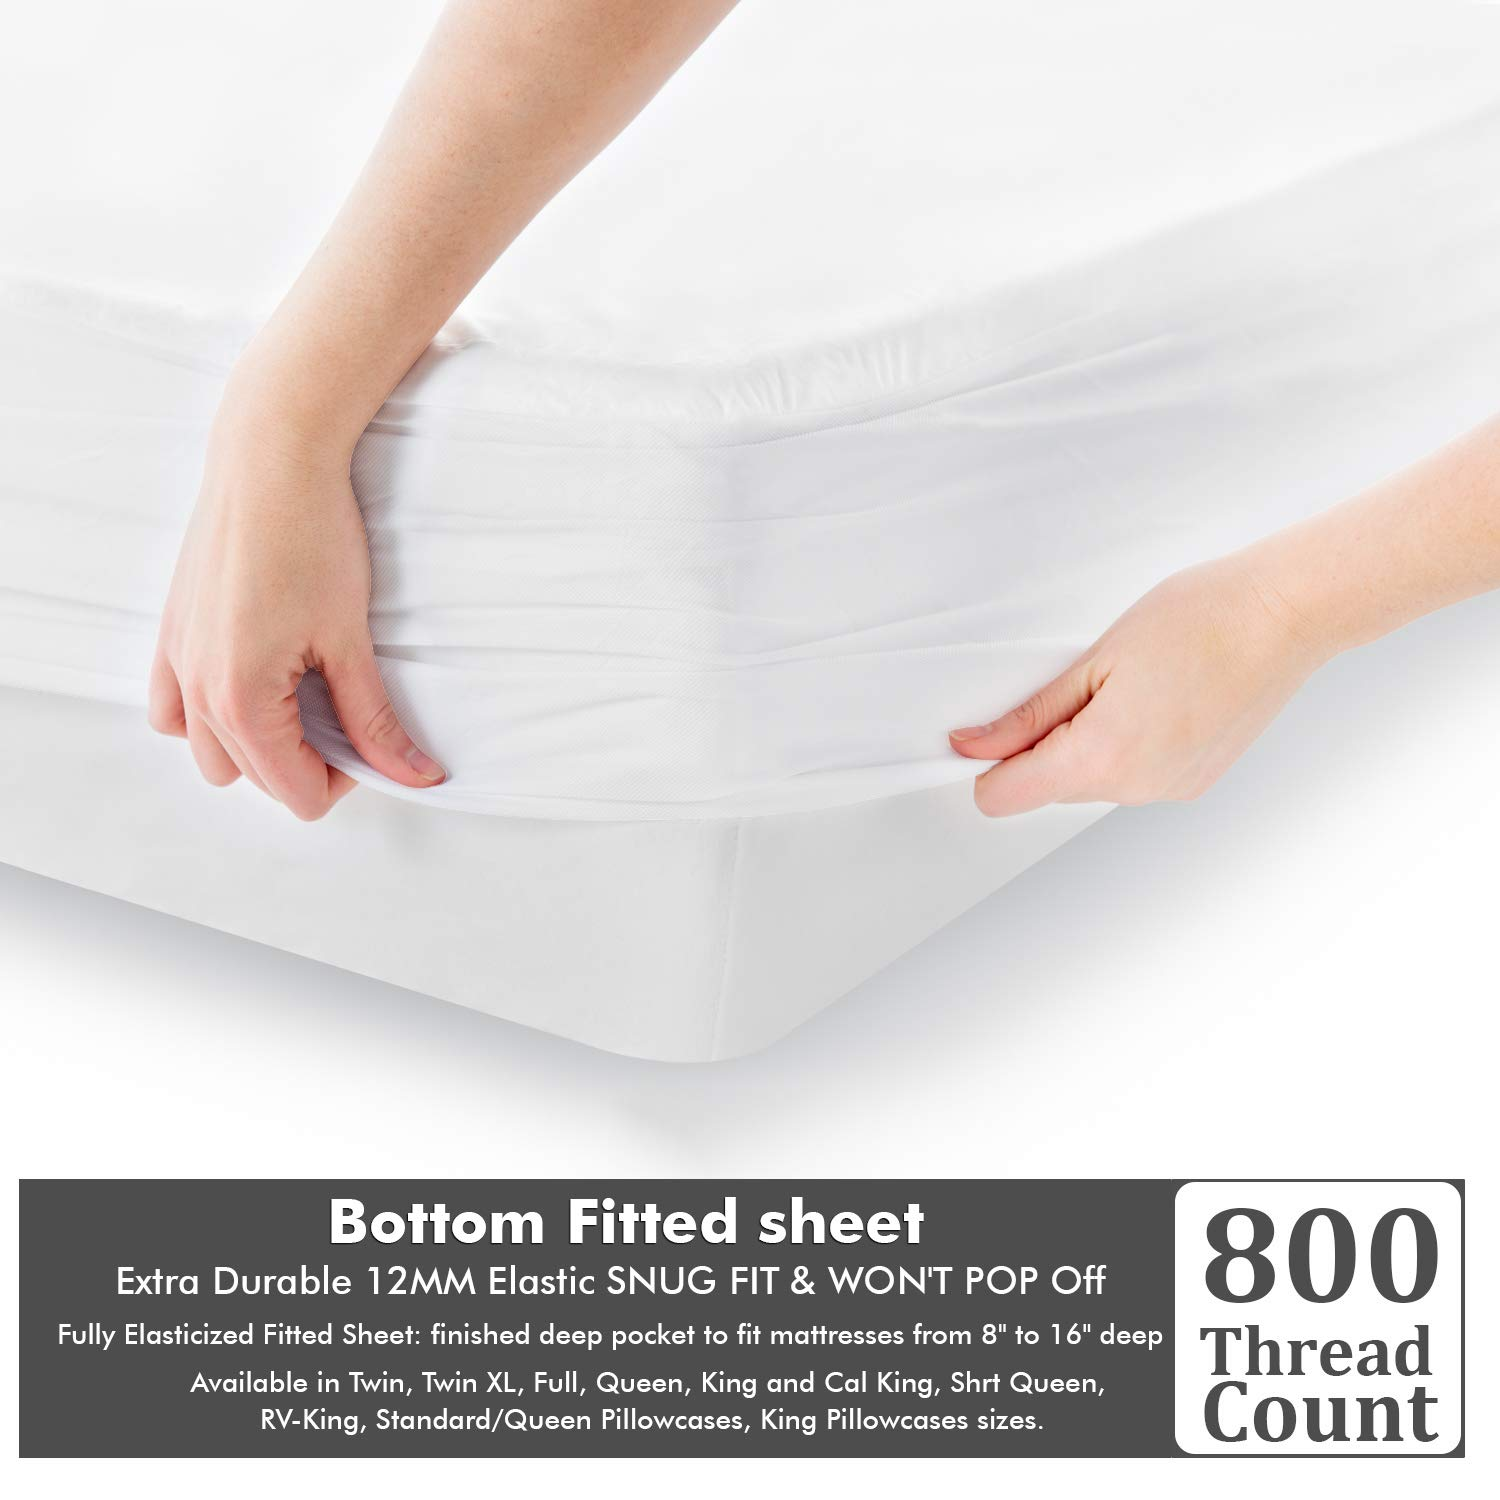 100% Cotton Sheets - Real 800 Thread Count California King 4 Piece Bed Sheet Set - Soft & Smooth Hotel Luxury 4pc Sheet Set Solid 15 inches Deep Pocket (Cal-King, White)